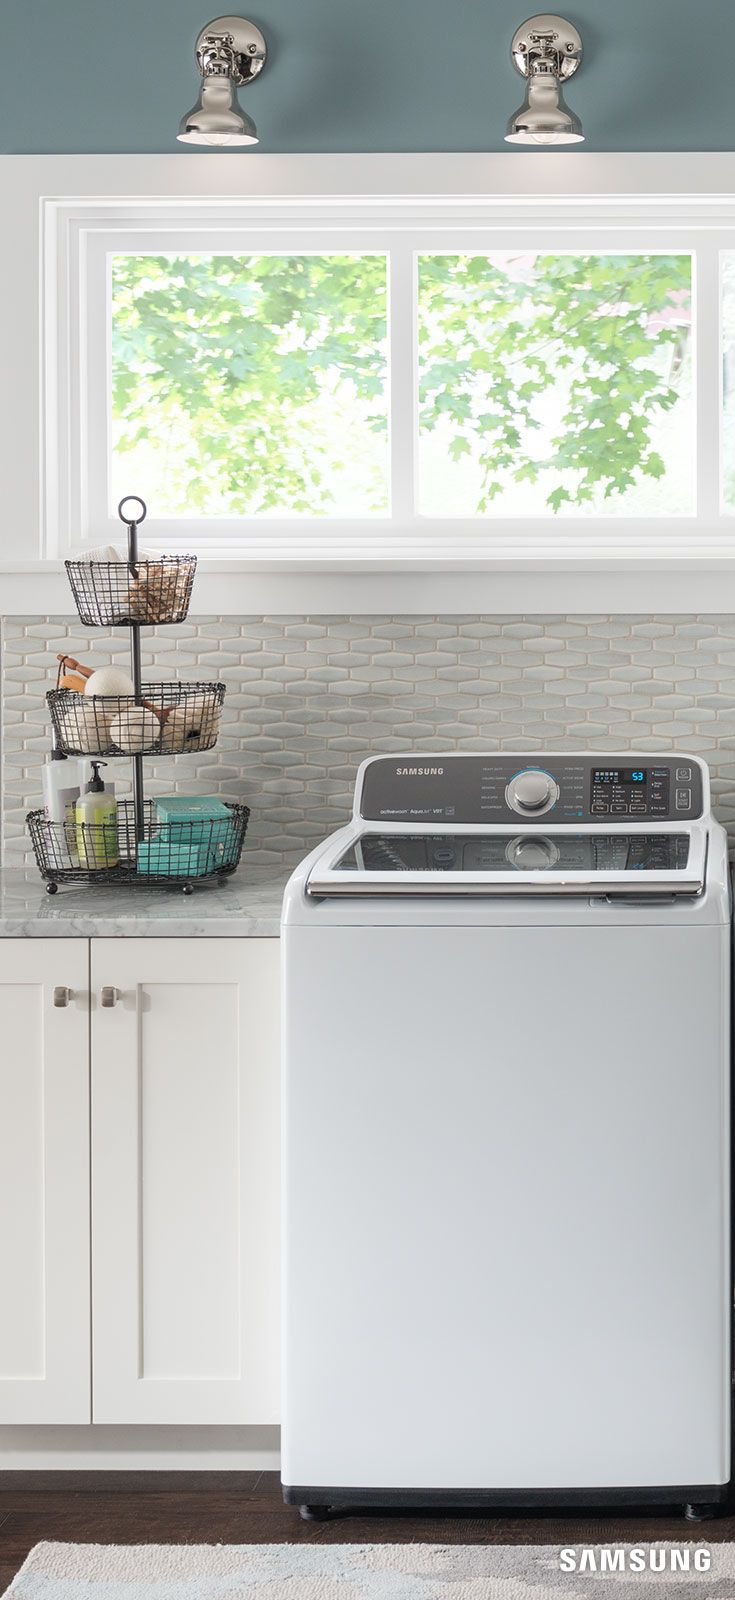 Samsung's white Top Load Washer with activewash adds an airy brightness to your laundry room while handling heavy loads faster and more quietly. Highlight the sleek look of your washer by pairing it with varying textures, like wooden cabinetry or a stone backsplash.